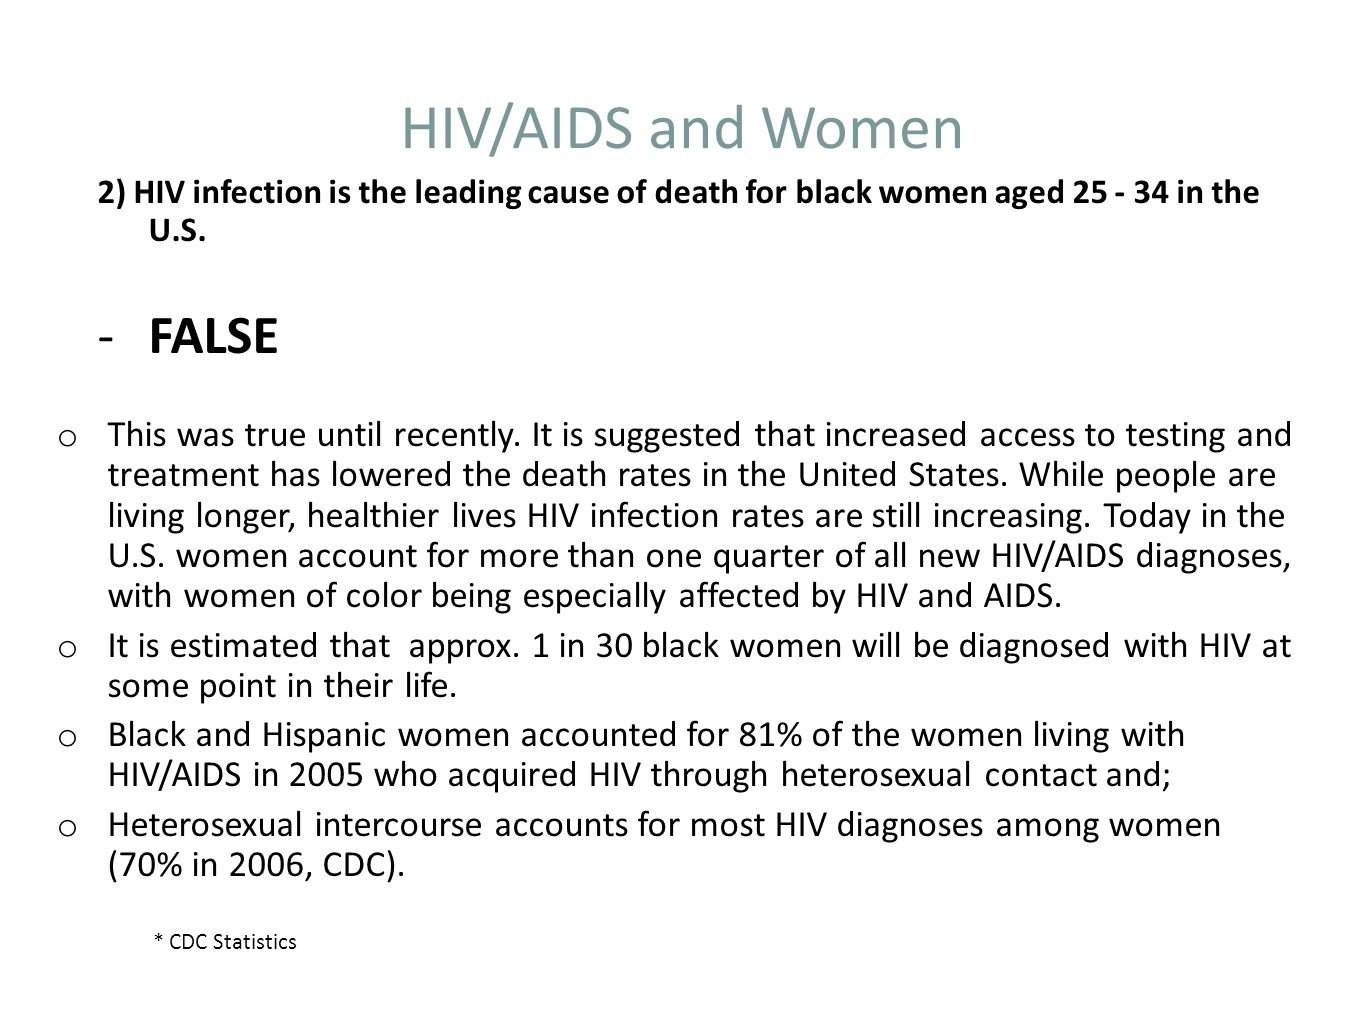 HIV/AIDS and Women FALSE